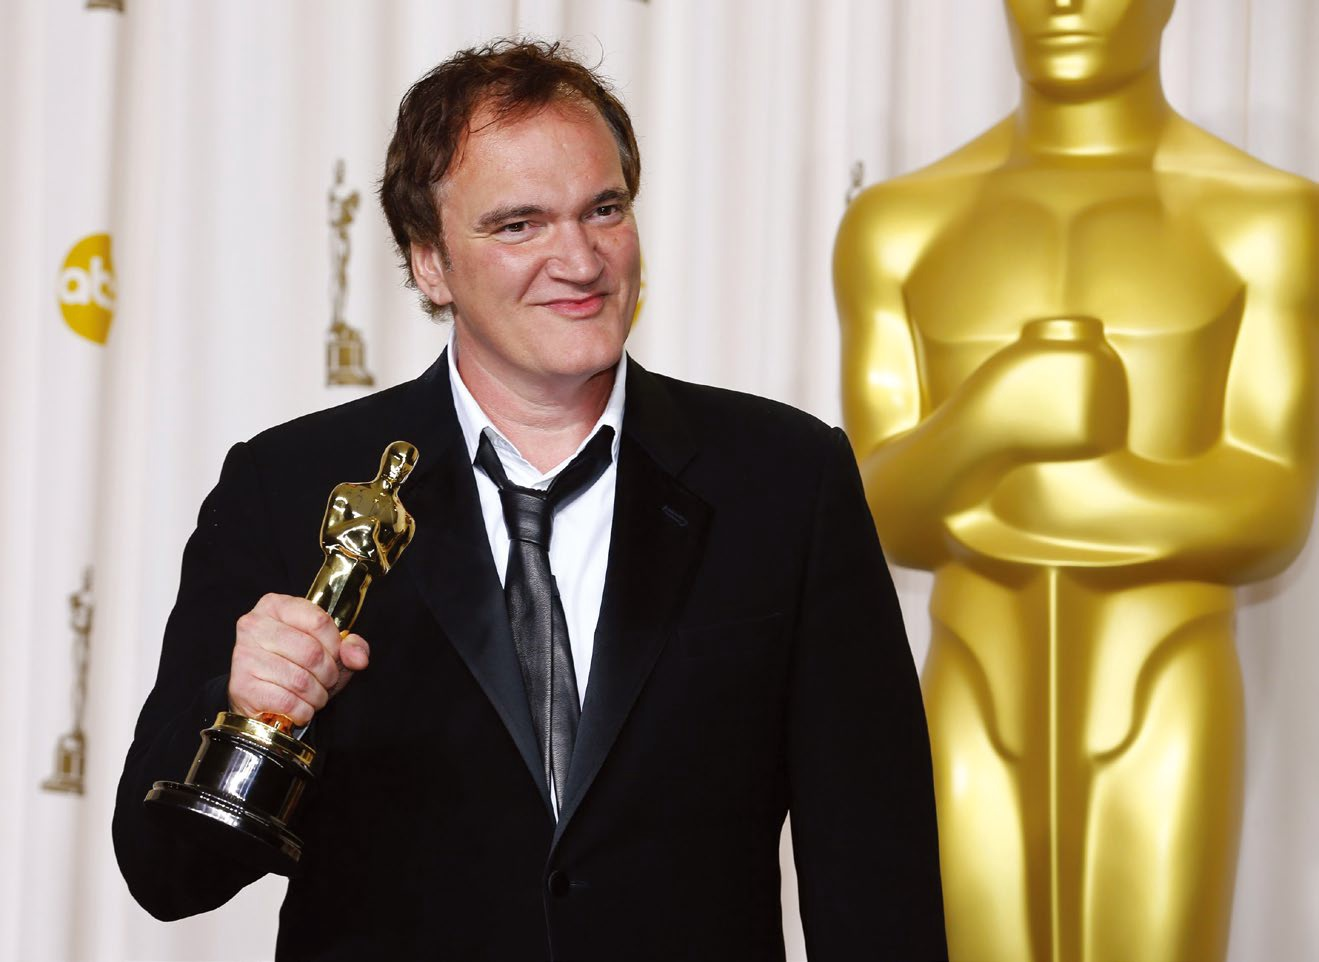 Quentin Tarantino winning his second Oscar